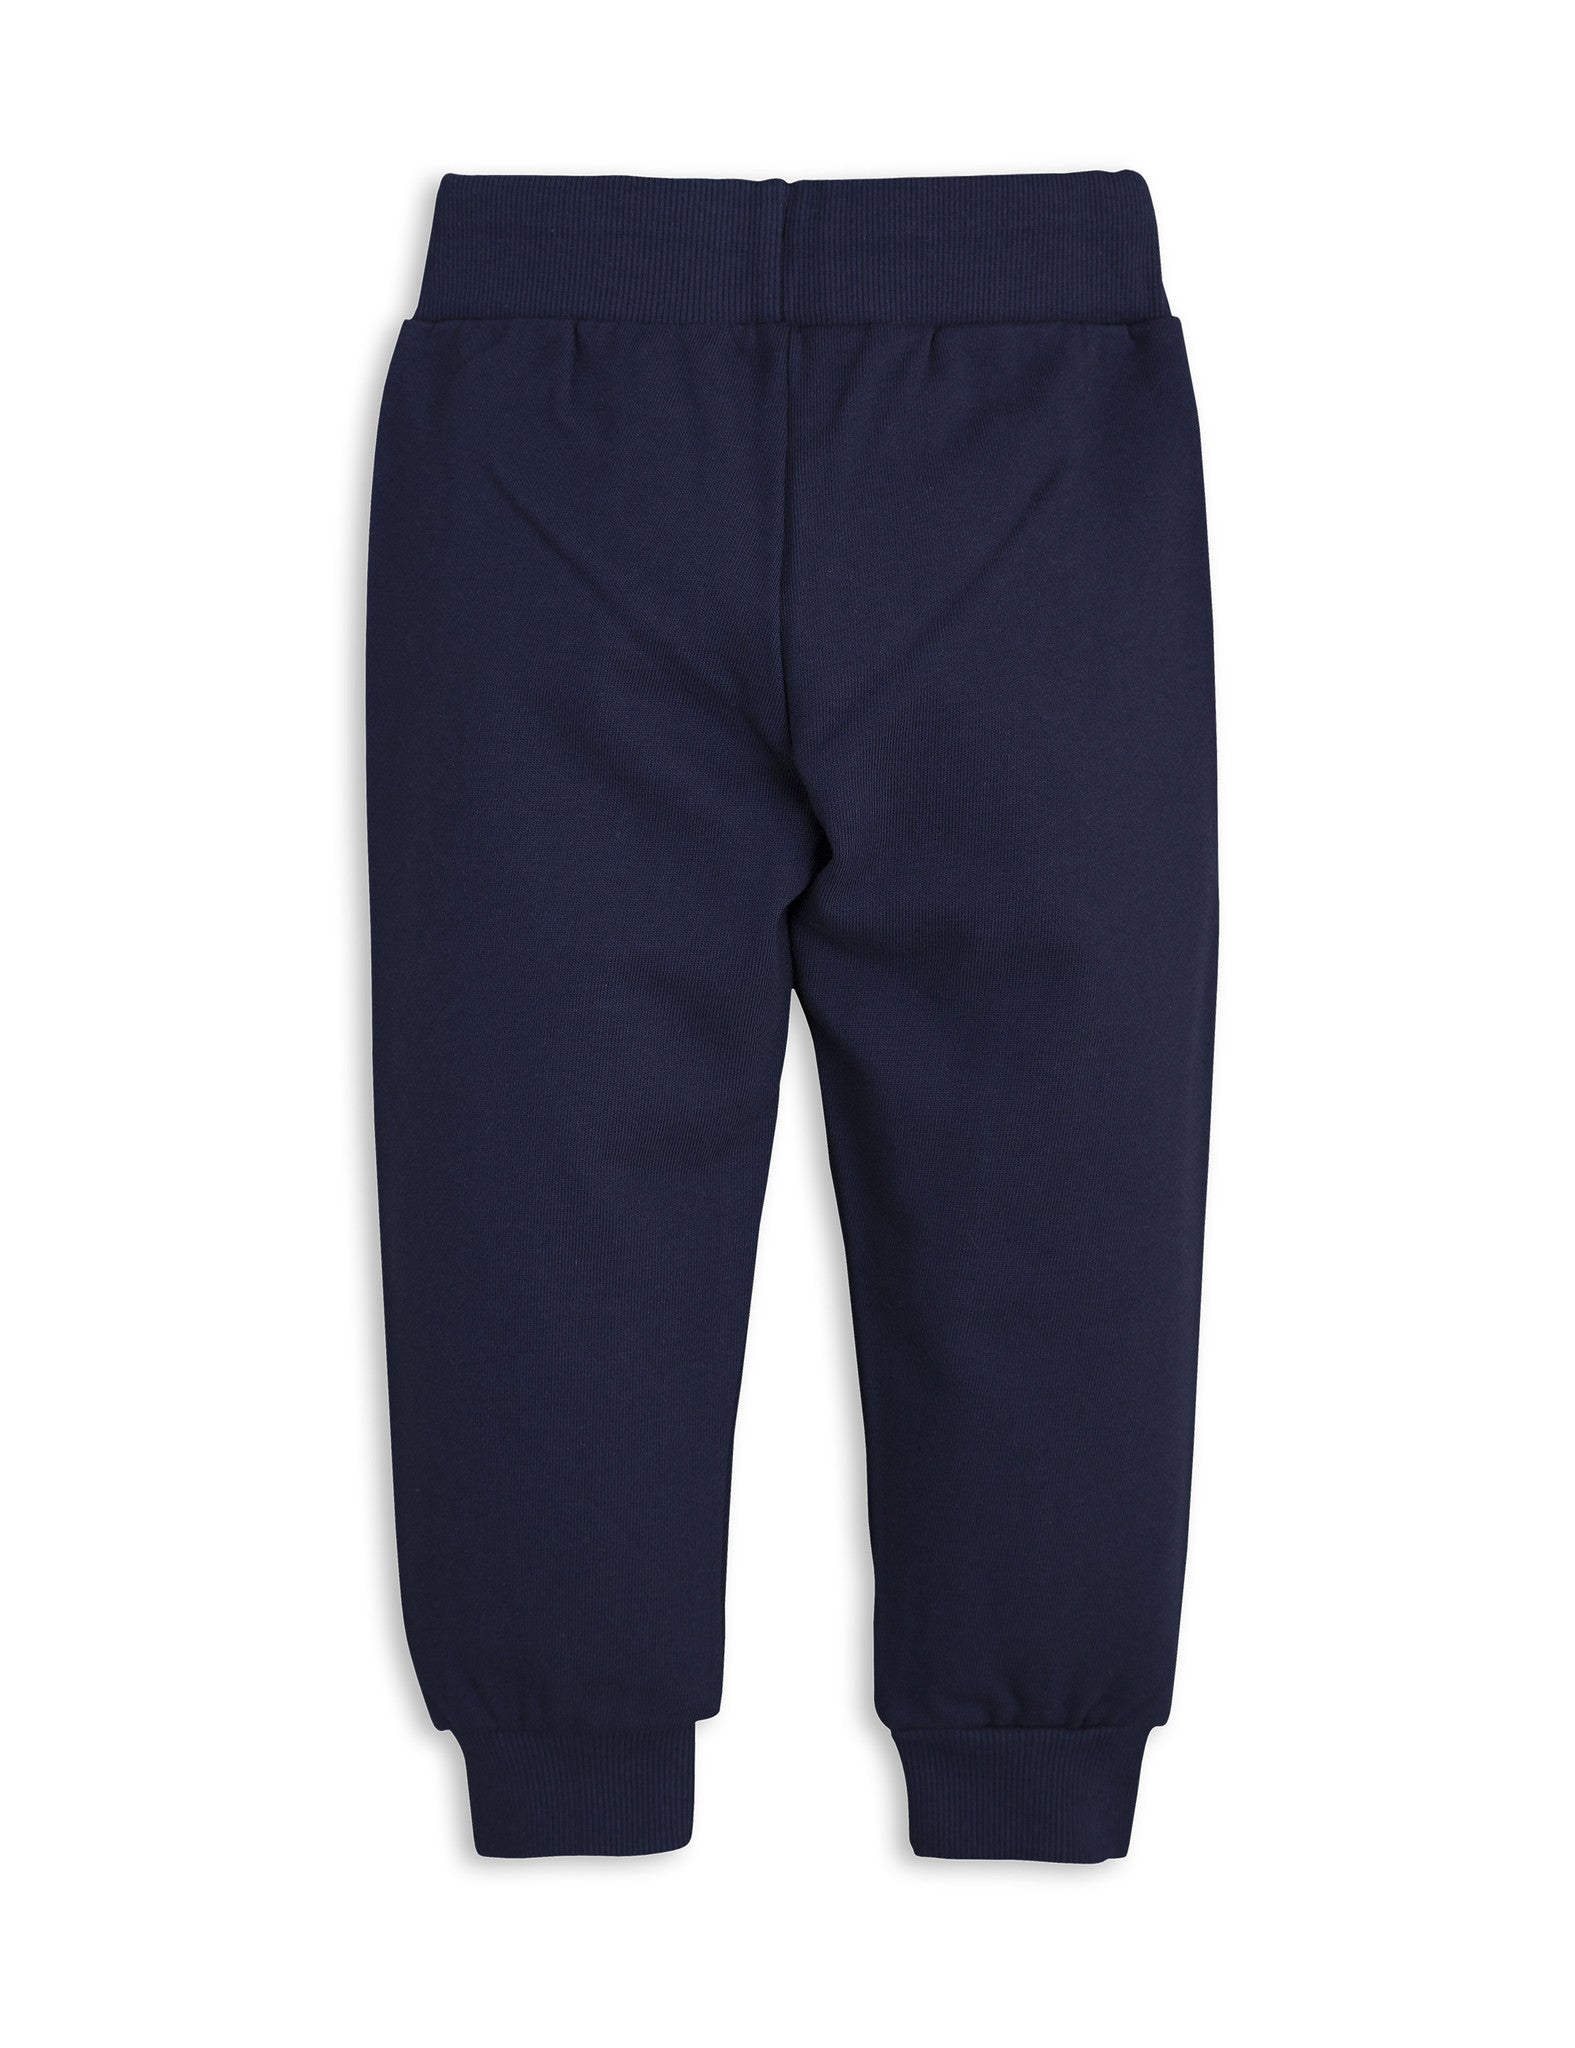 Mini Rodini - Frog Sweatpants in Navy